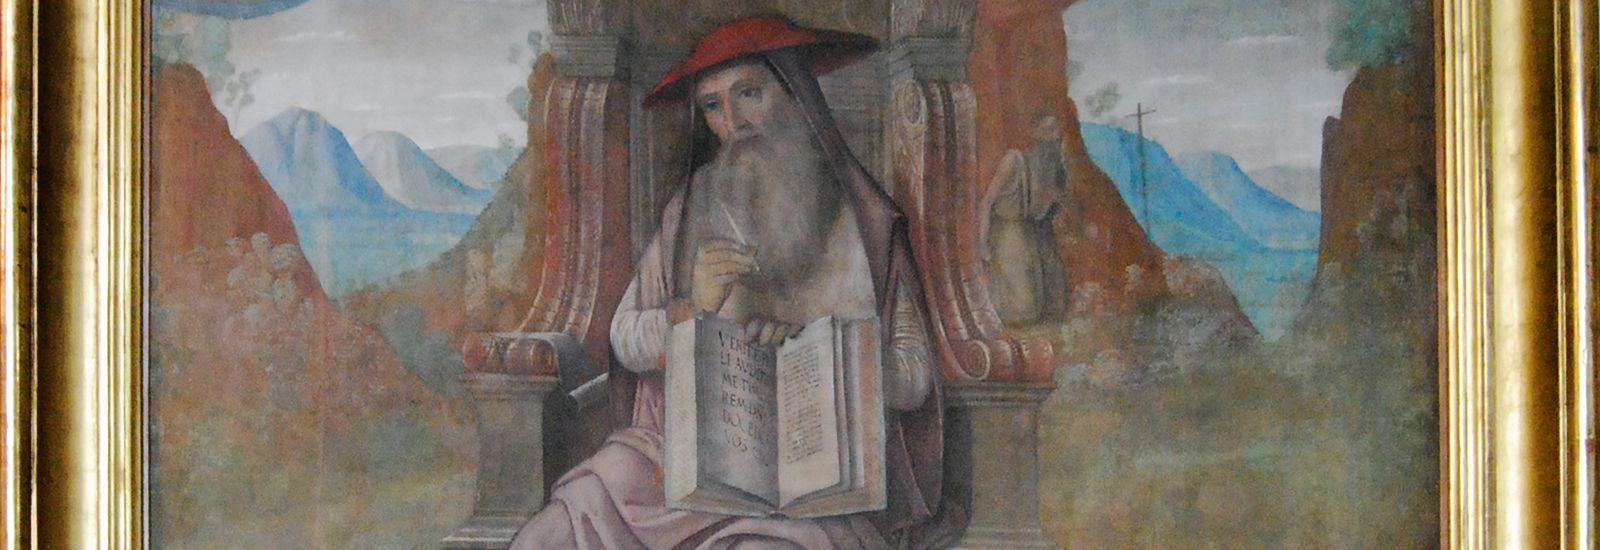 A close up of a painting of St Jerome